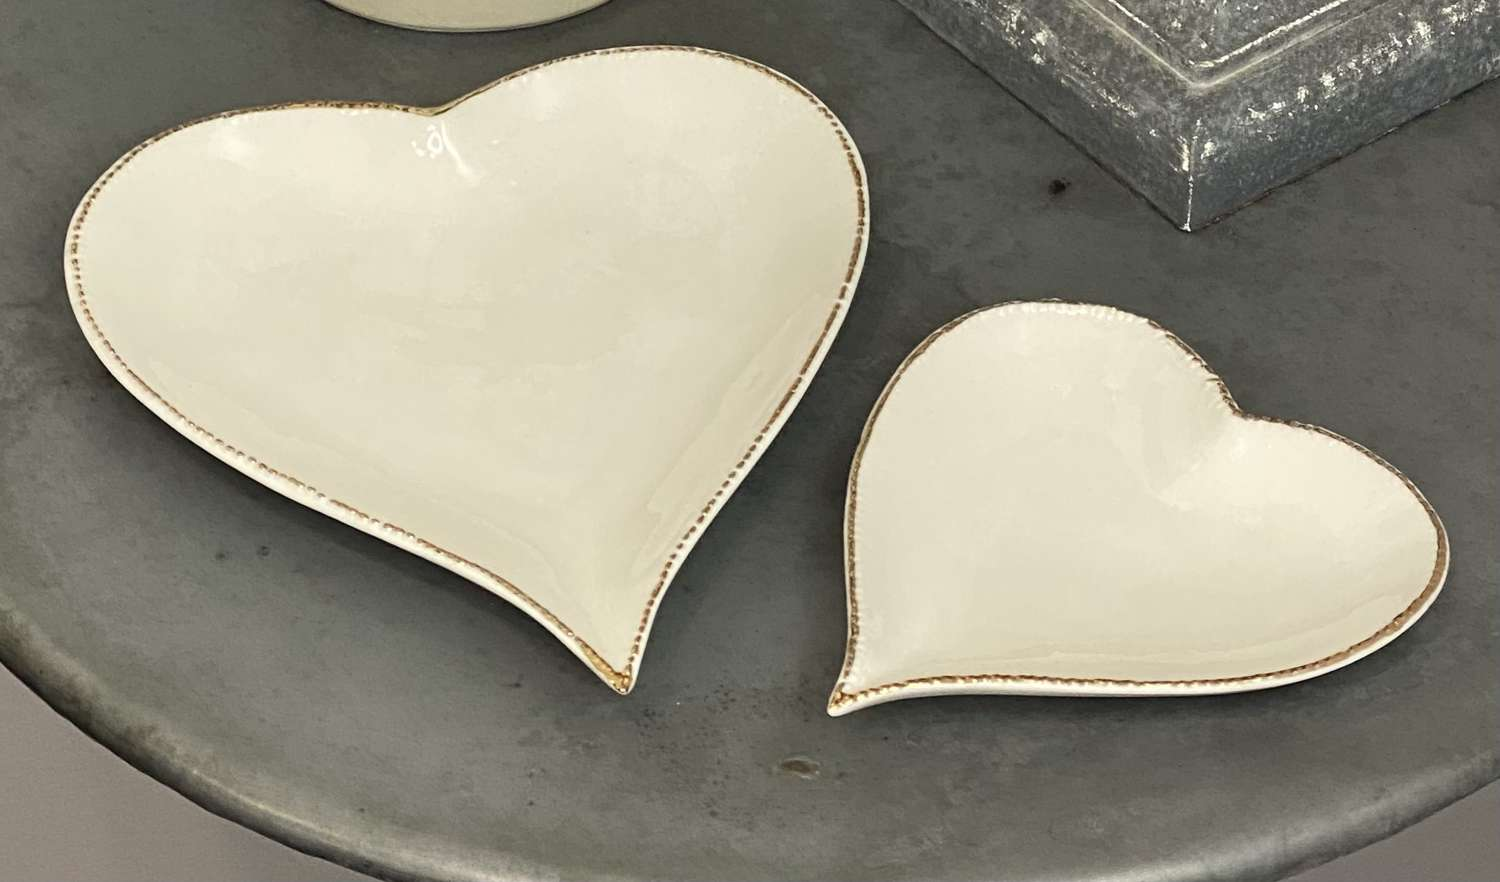 Heart plate/dish with gold edge - Large & Small